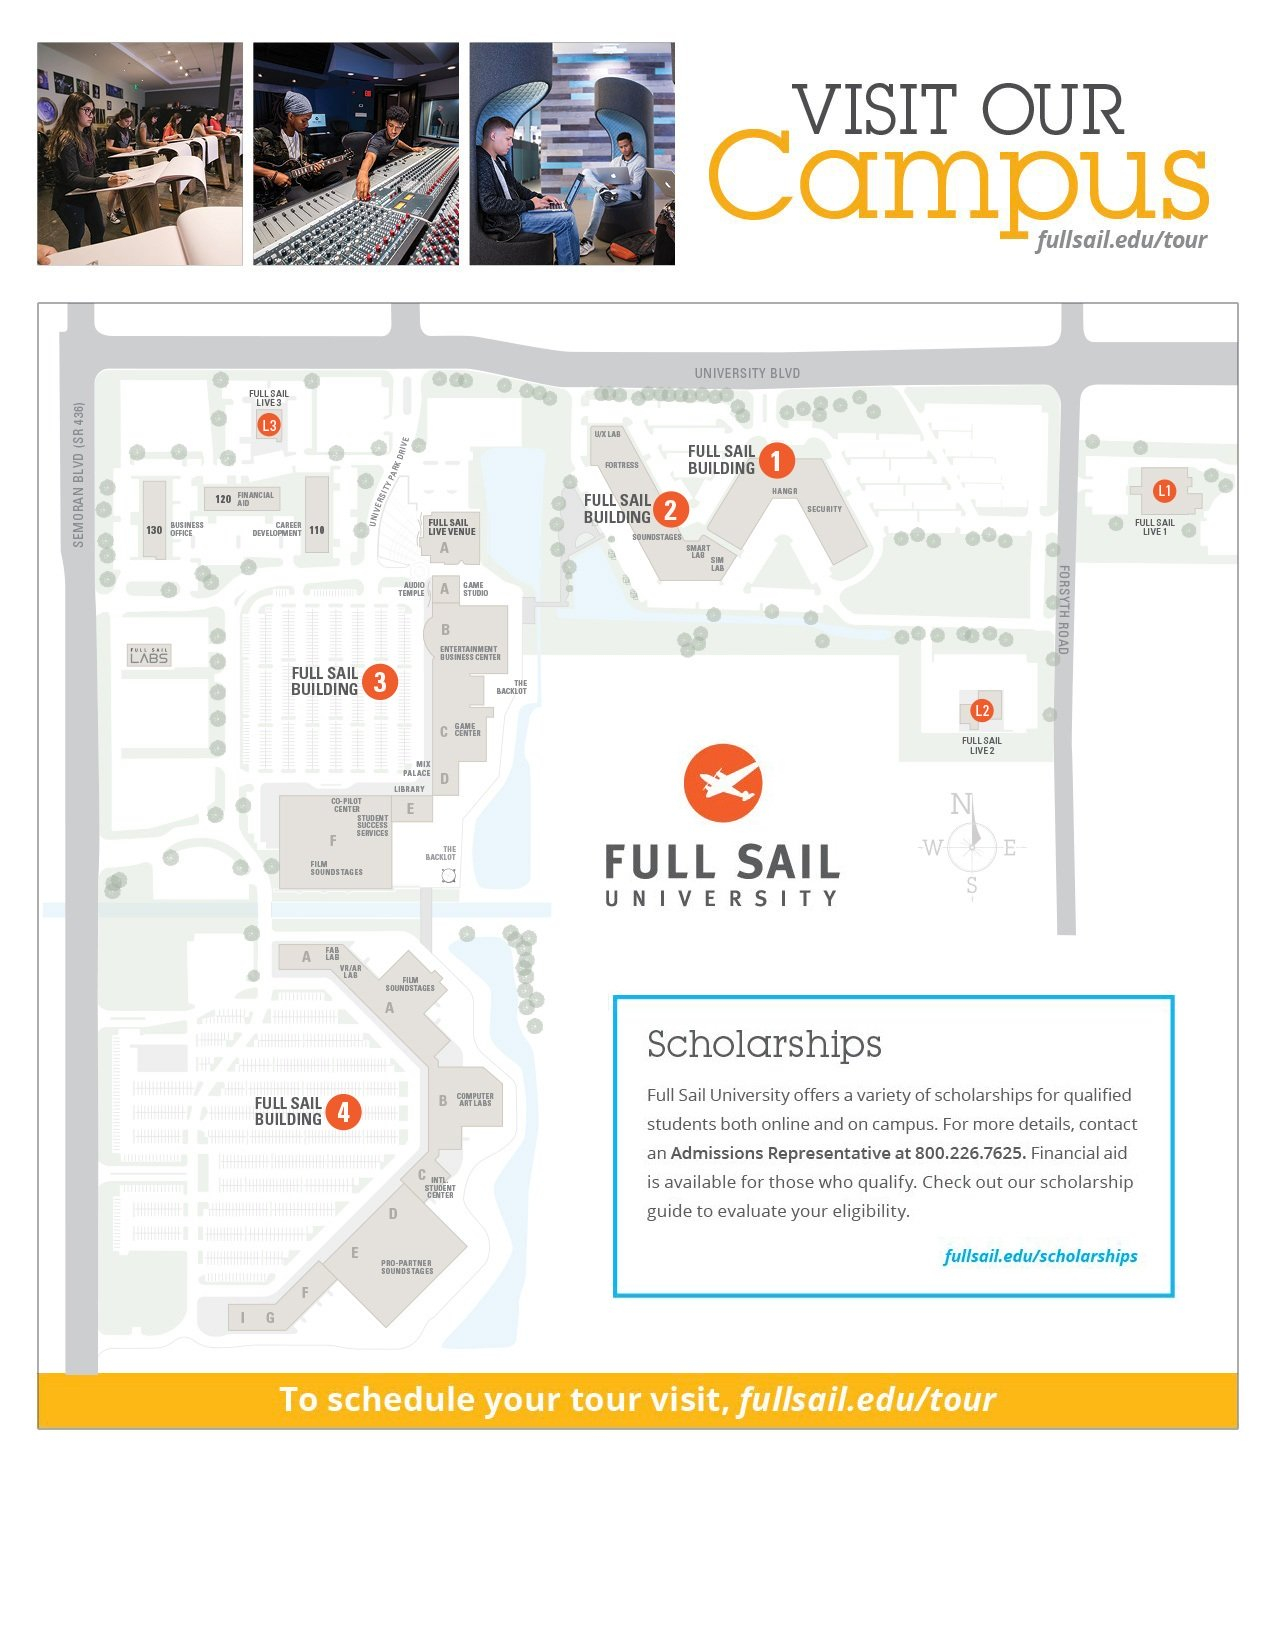 Contact Regarding Full Sail University Class Schedule